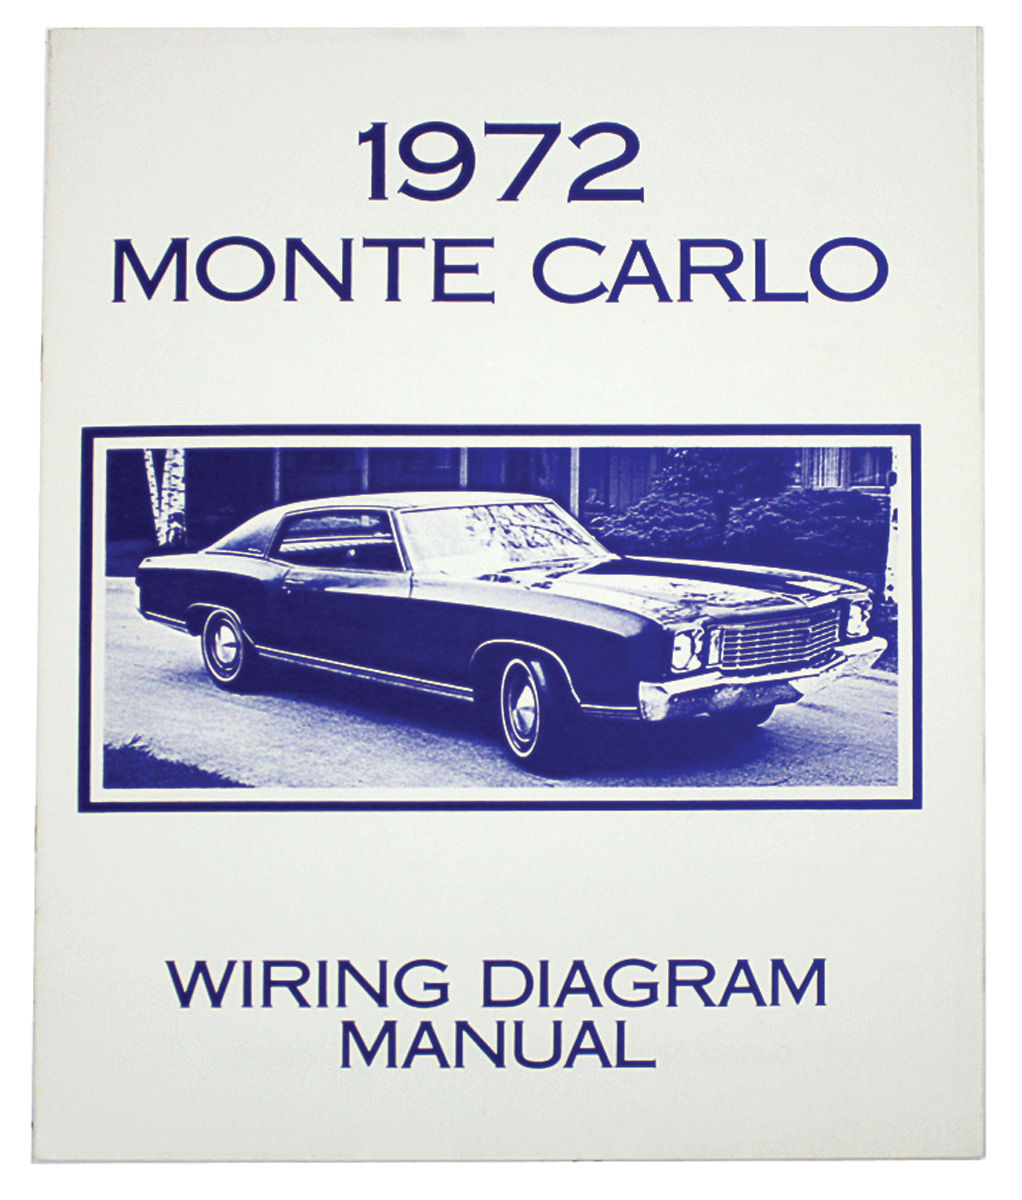 small resolution of 1972 monte carlo wiring diagram wiring library for a 1999 chevy monte carlo wiring diagram 1970 monte carlo alternator wiring diagram